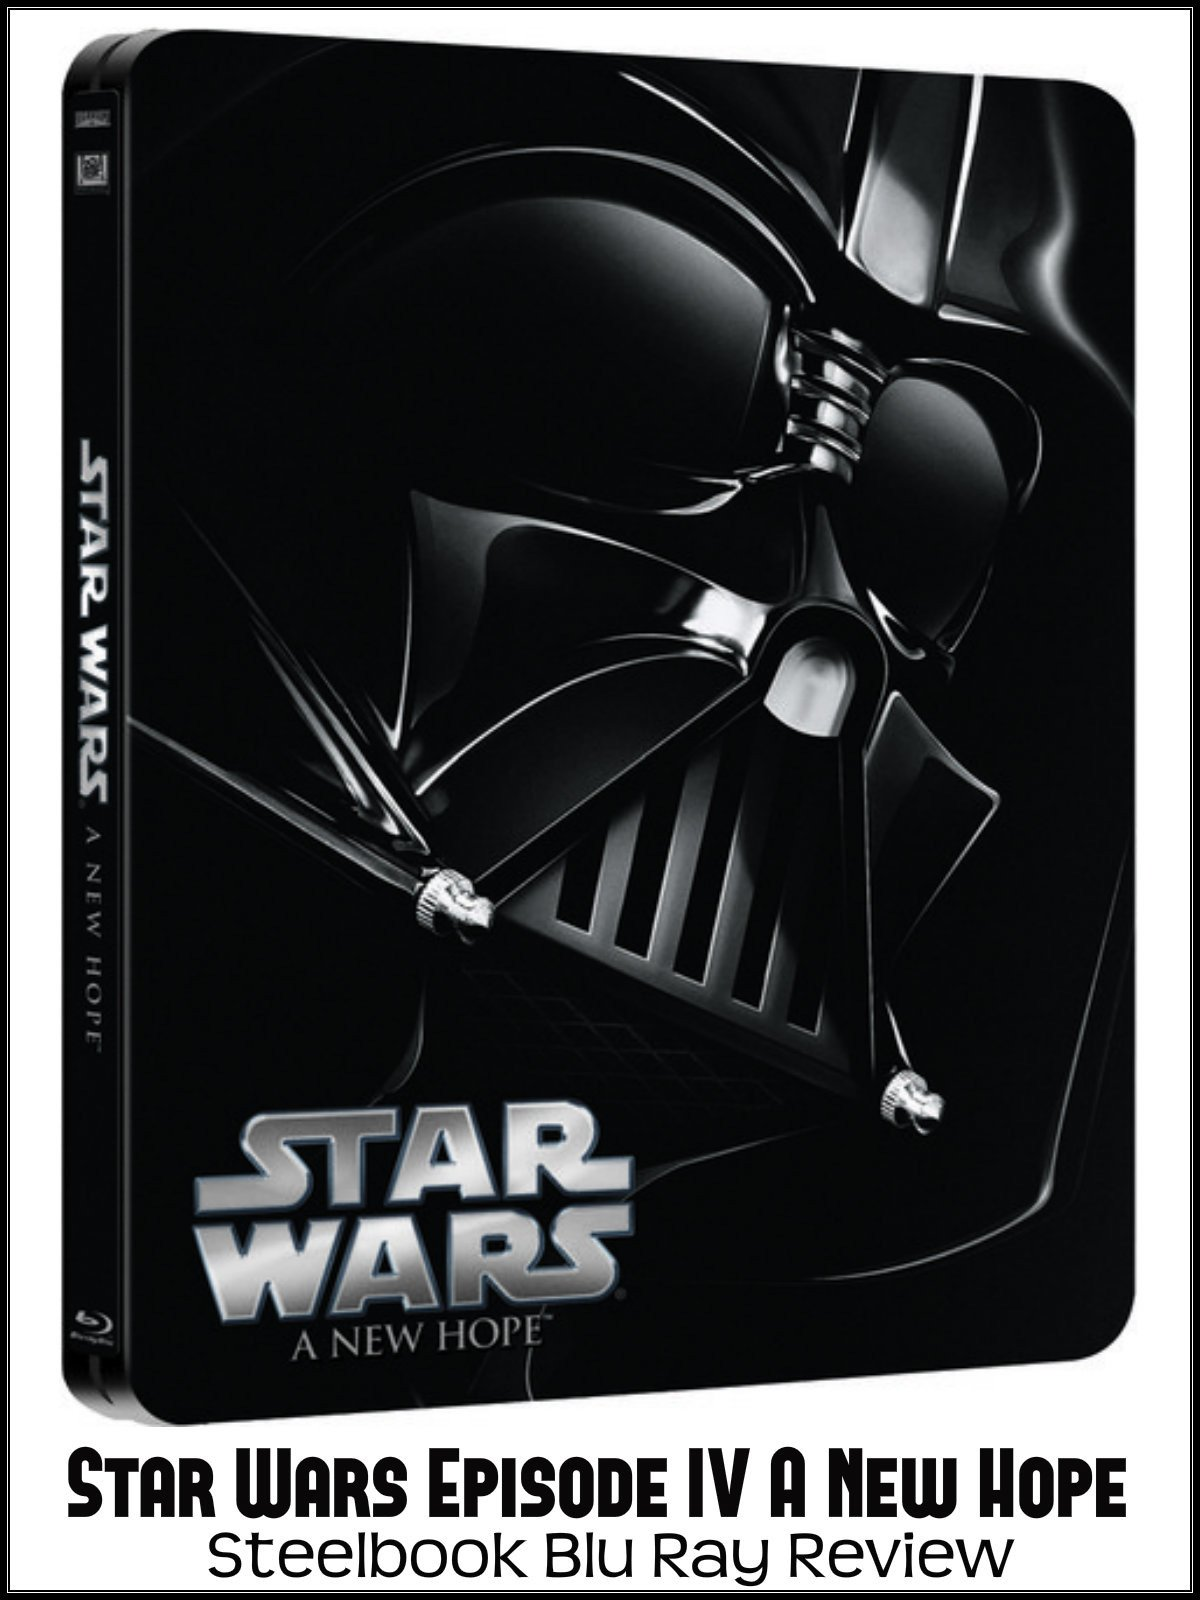 Review: Star Wars Episode IV A New Hope Steelbook Blu Ray Review on Amazon Prime Video UK